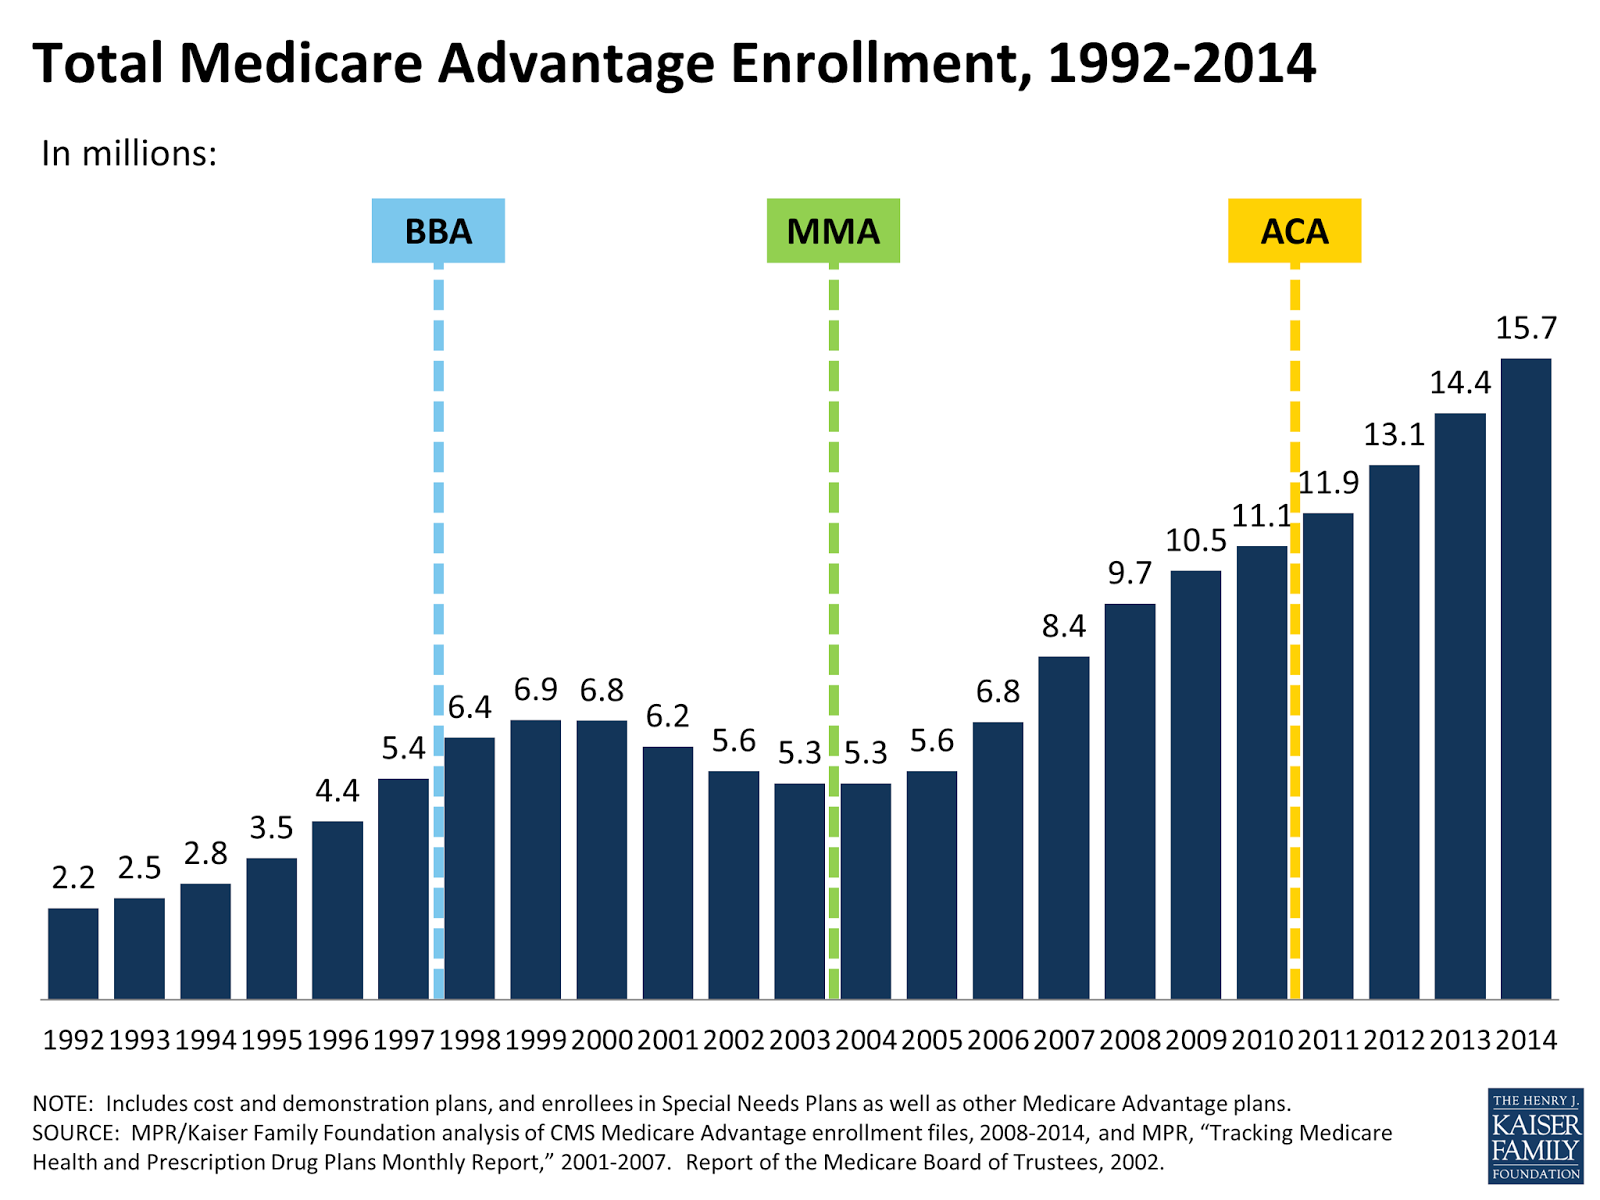 Growth in Medicare Advantage Enrollment